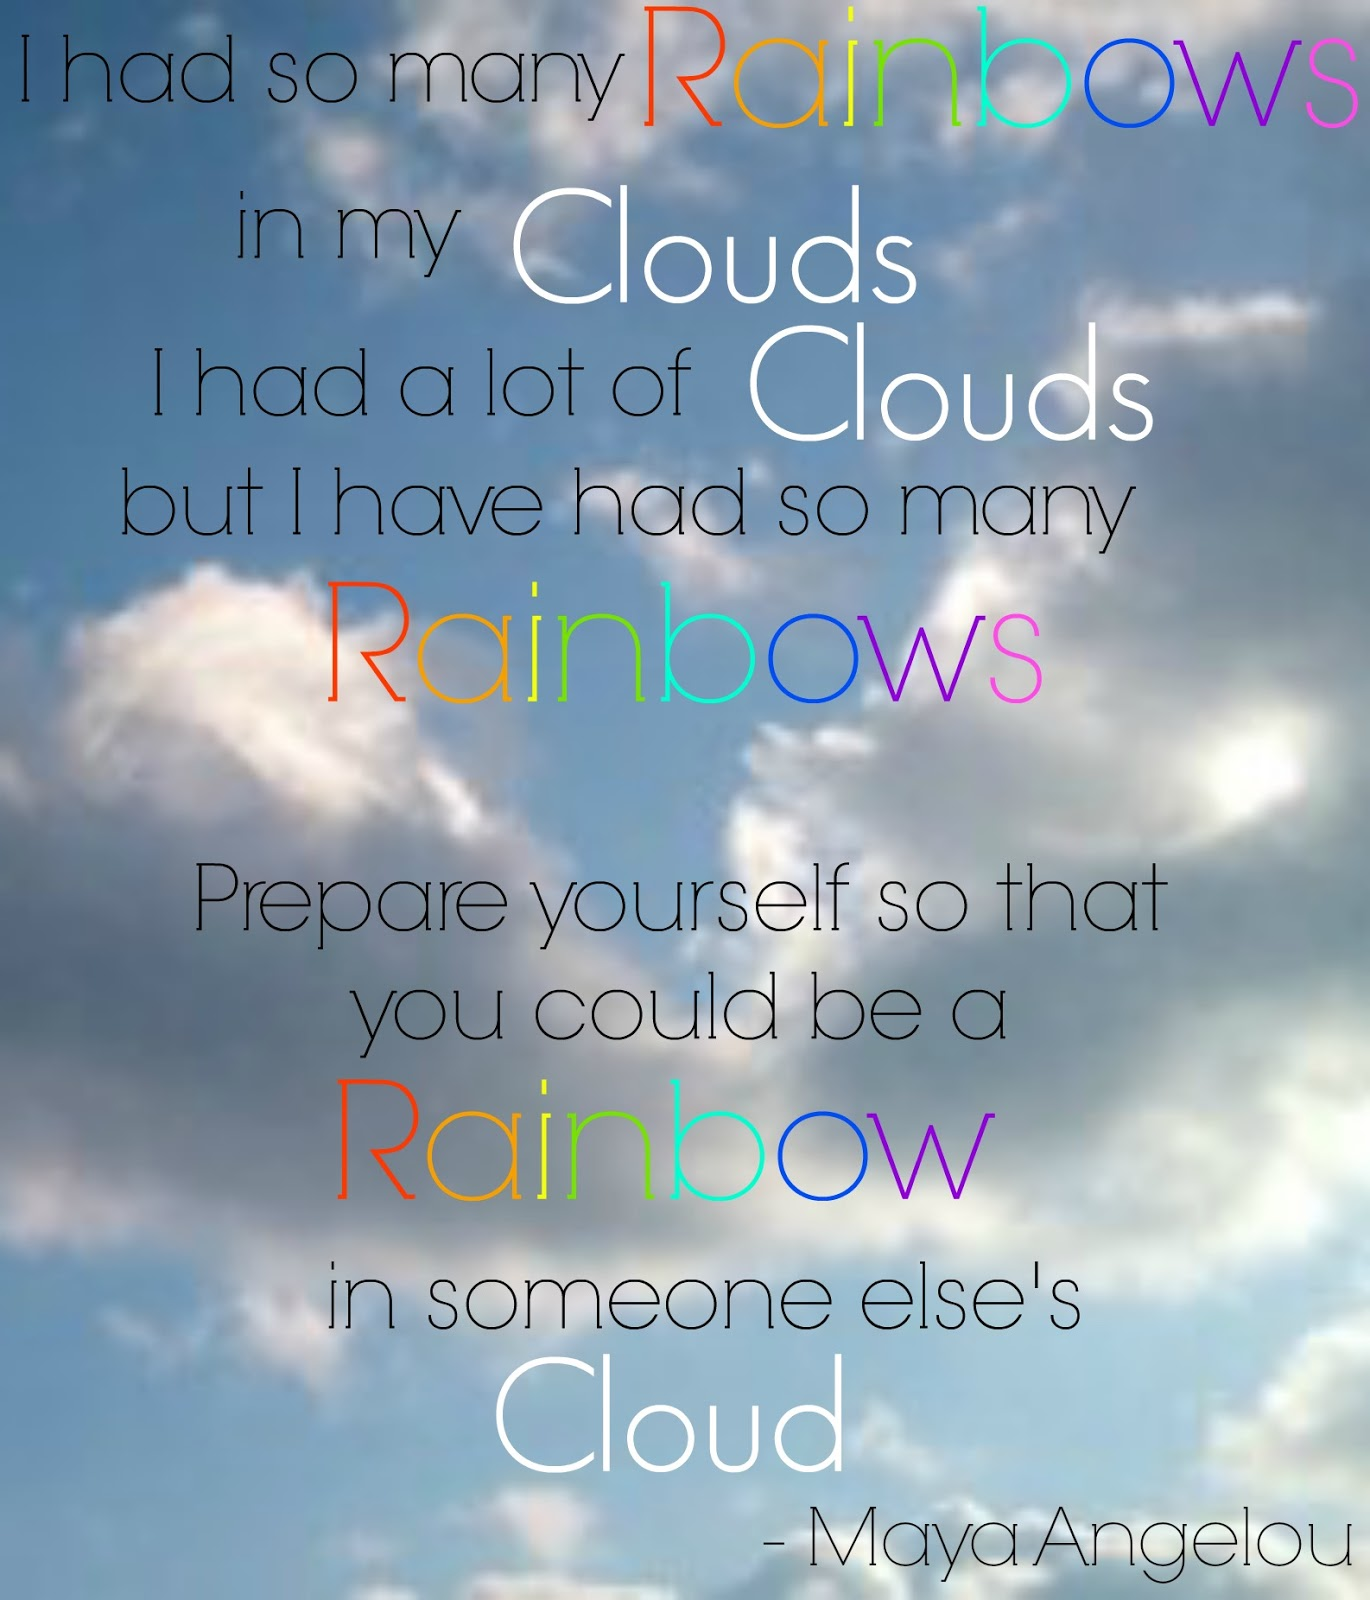 Cloud Quotes Interesting Rainbow Quotes And Sayings  Suri's First Birthday  Pinterest . Inspiration